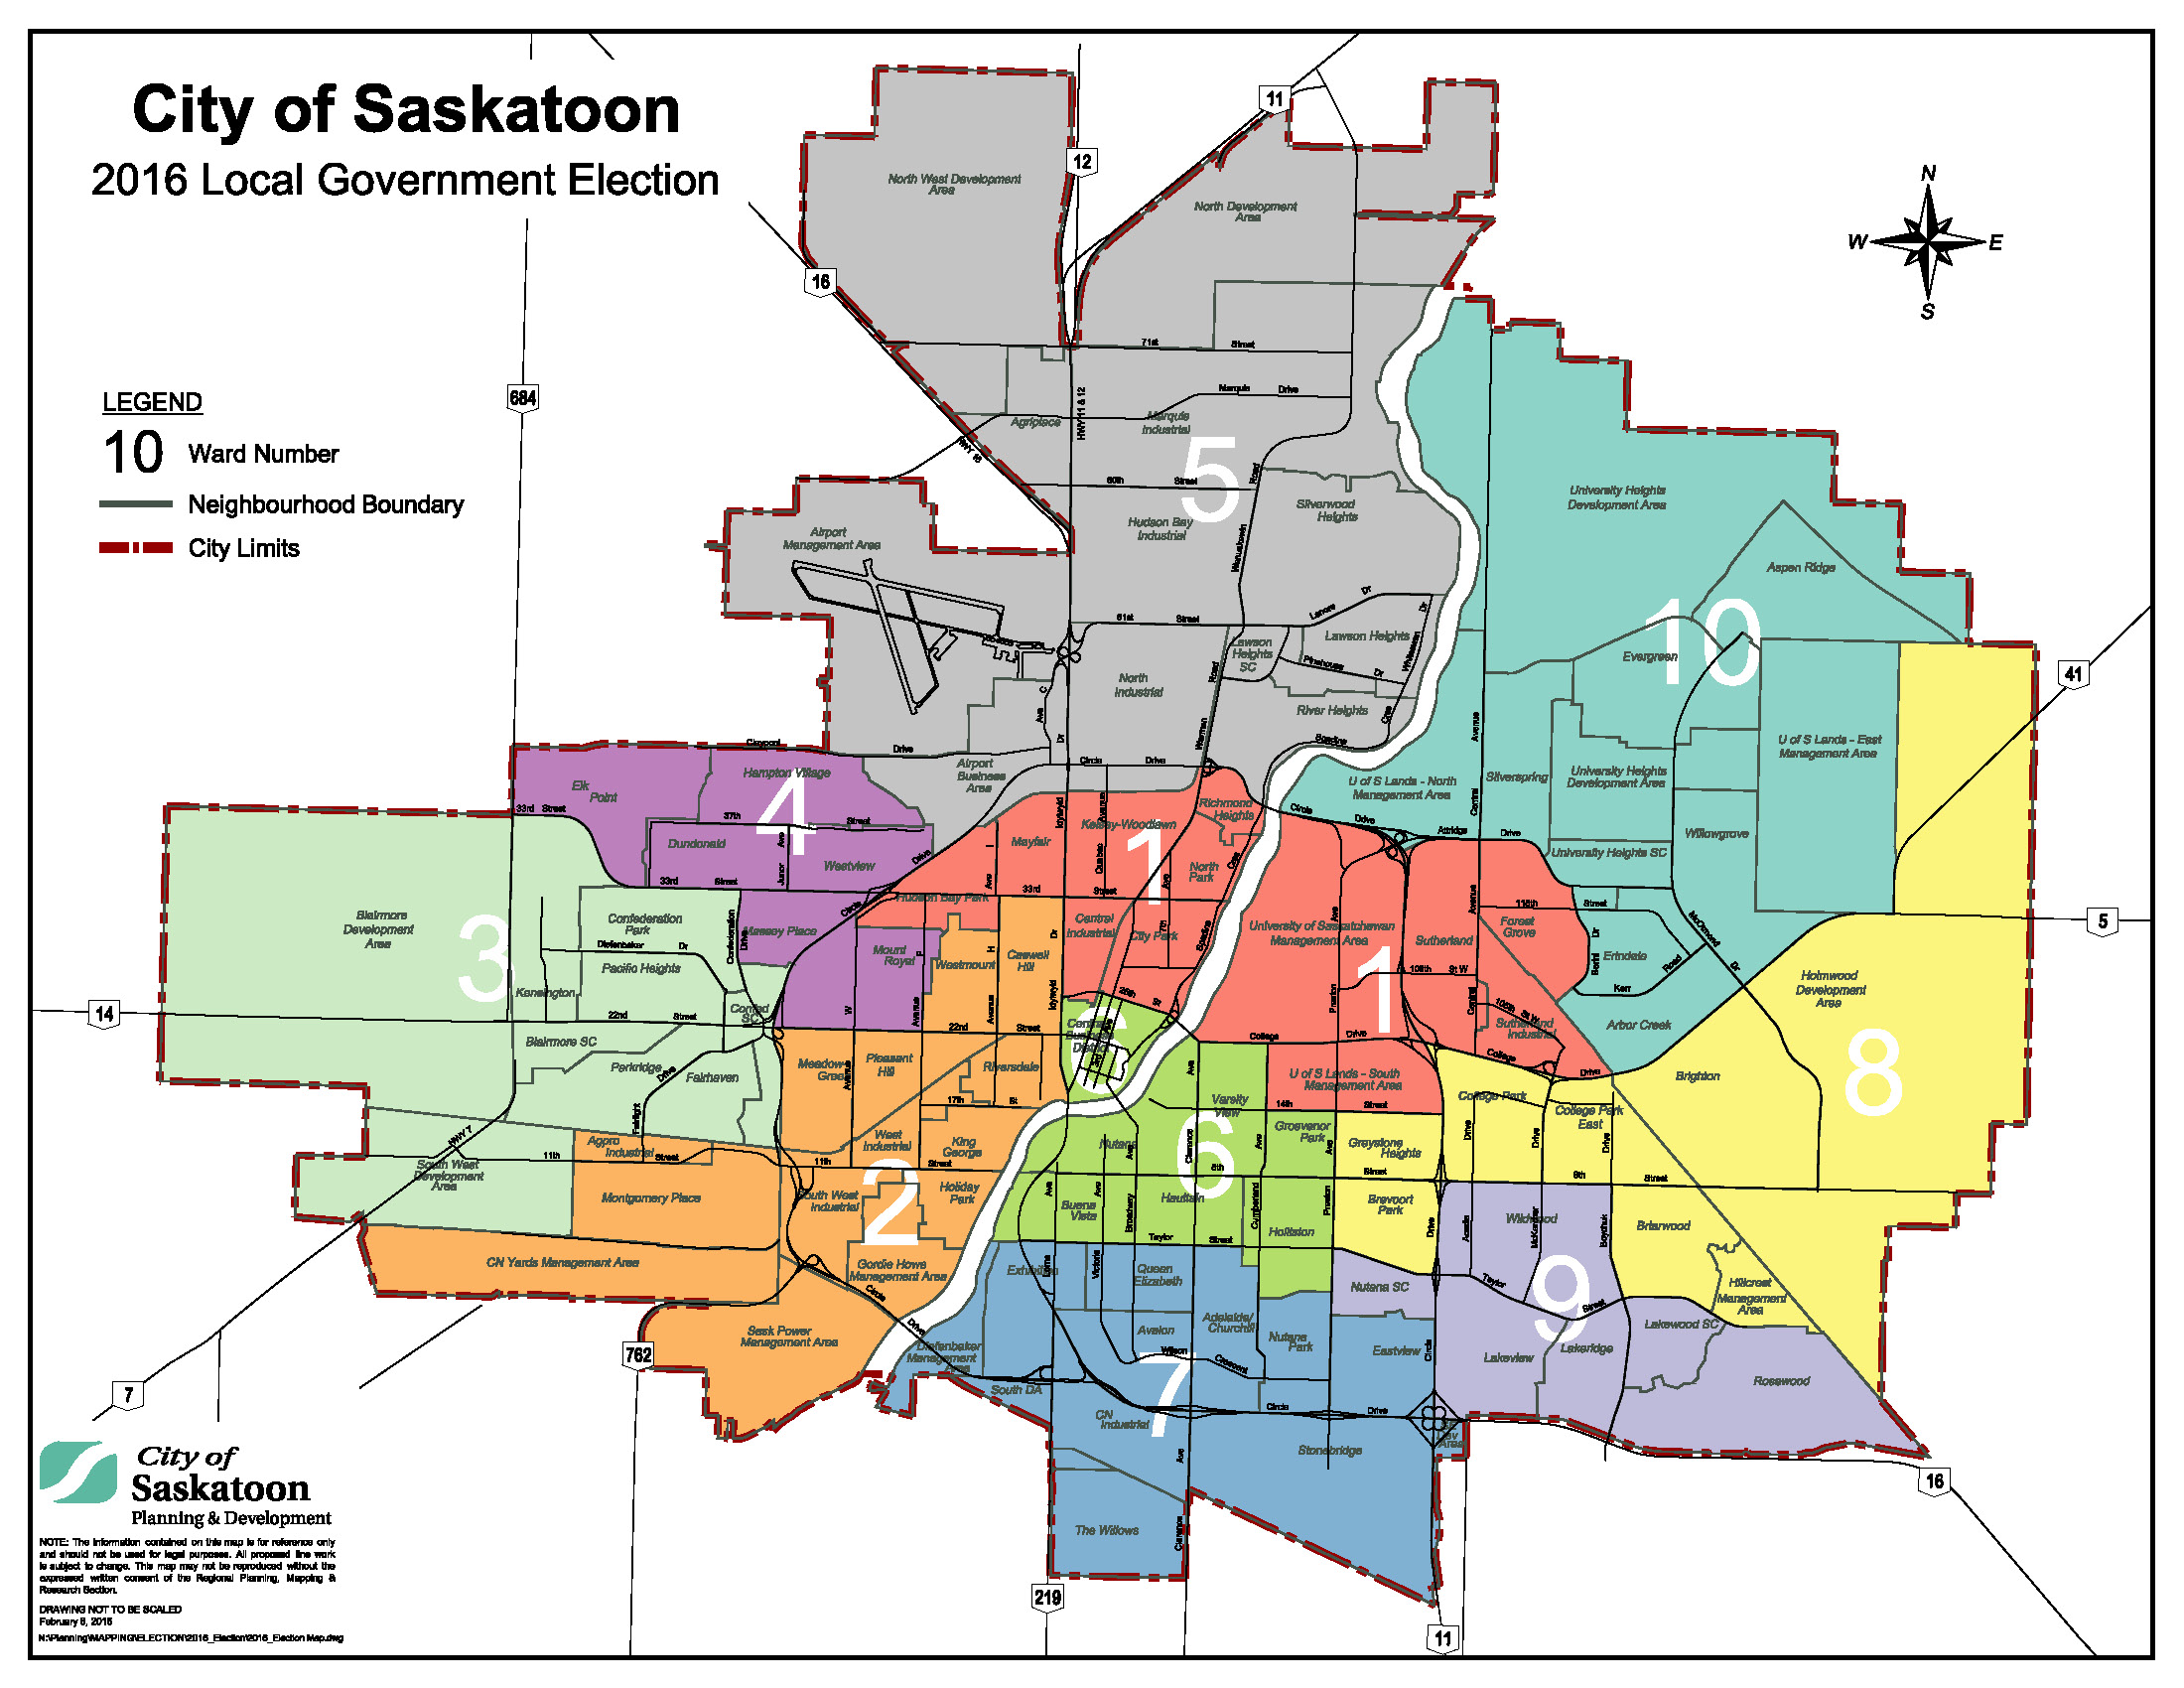 2016 Municipal Election Boundaries